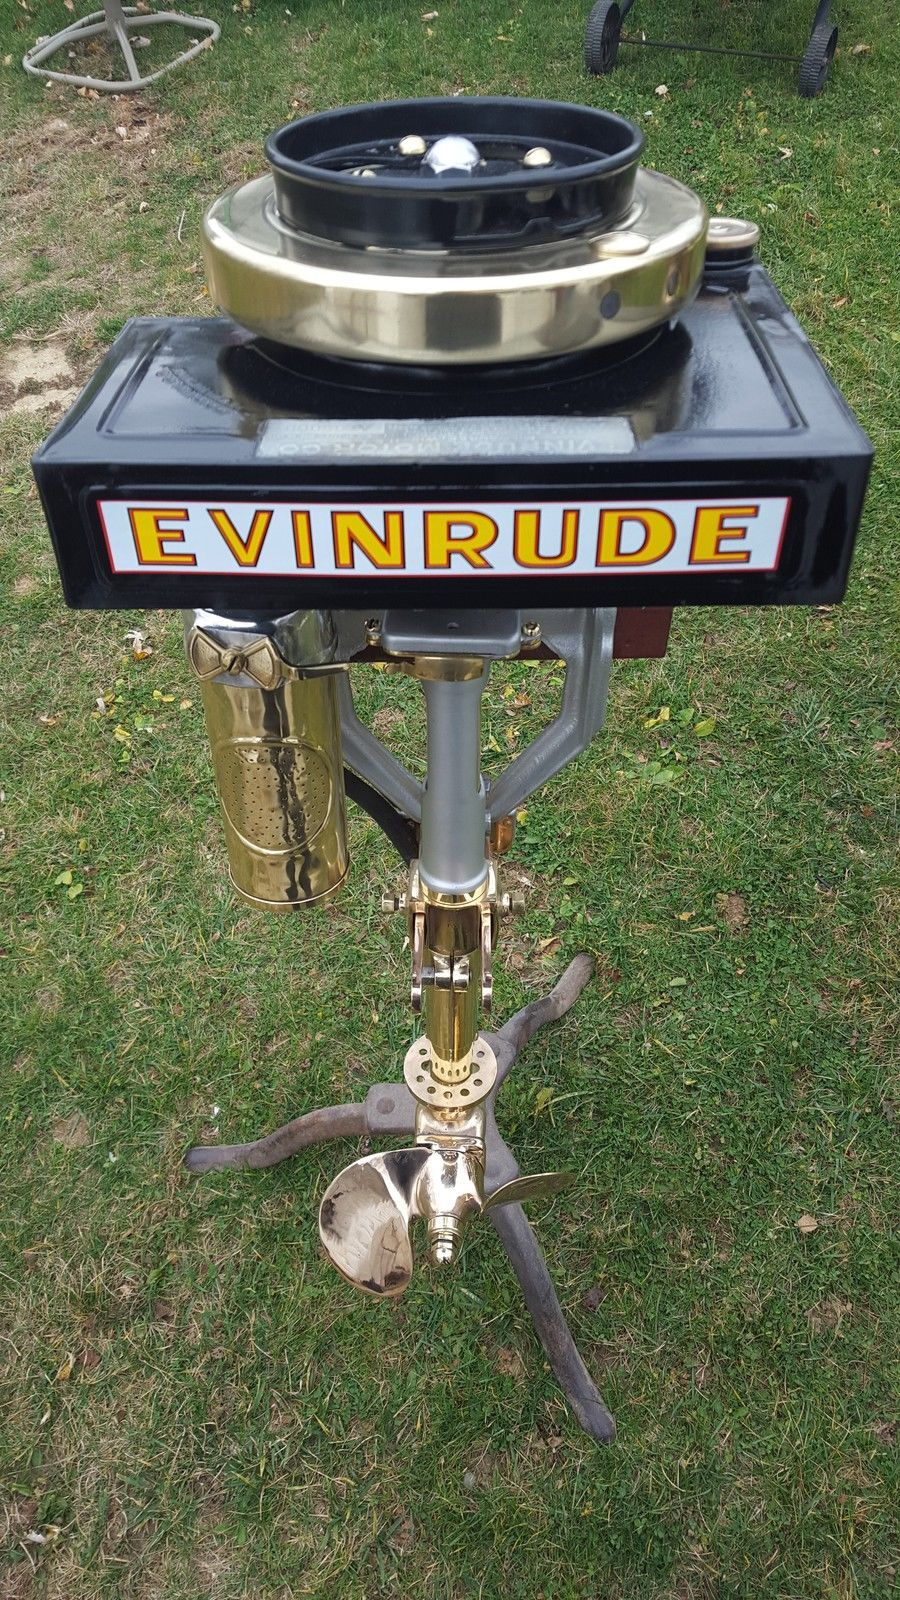 1917 Evinrude rowboat motor. Talk about classy in the day !!